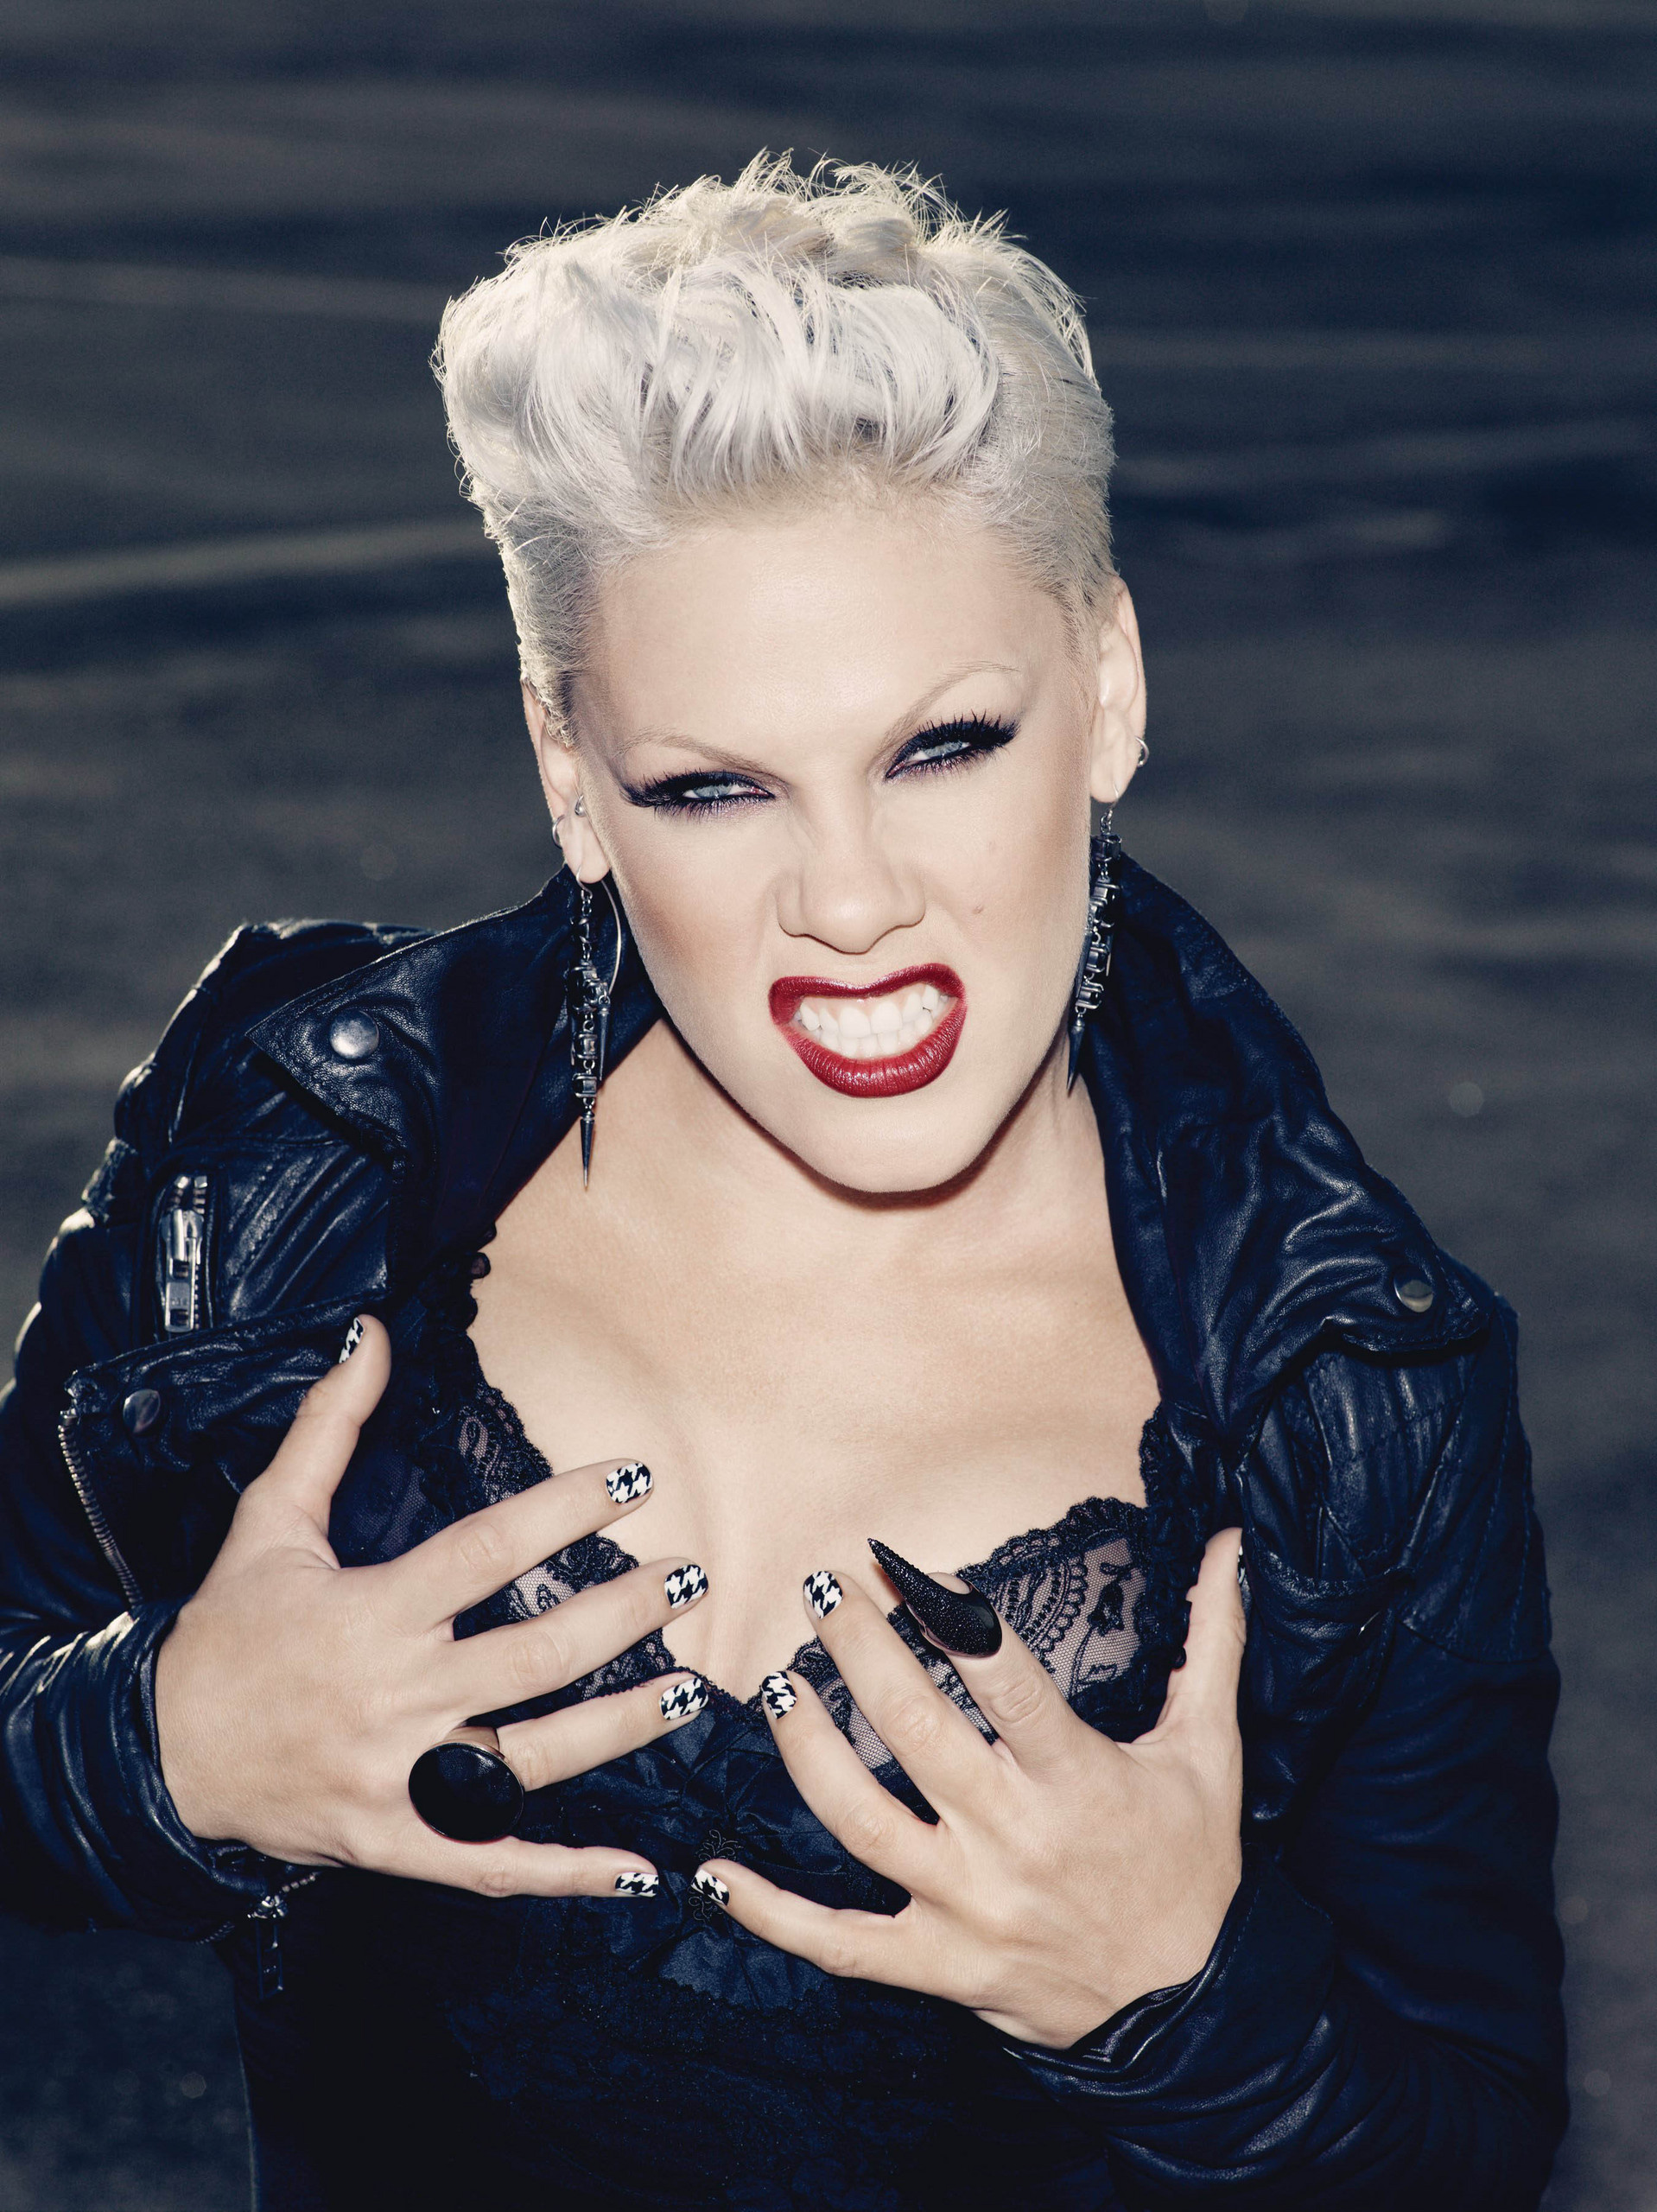 P!NK - Pink Photo (17642242) - Fanpop